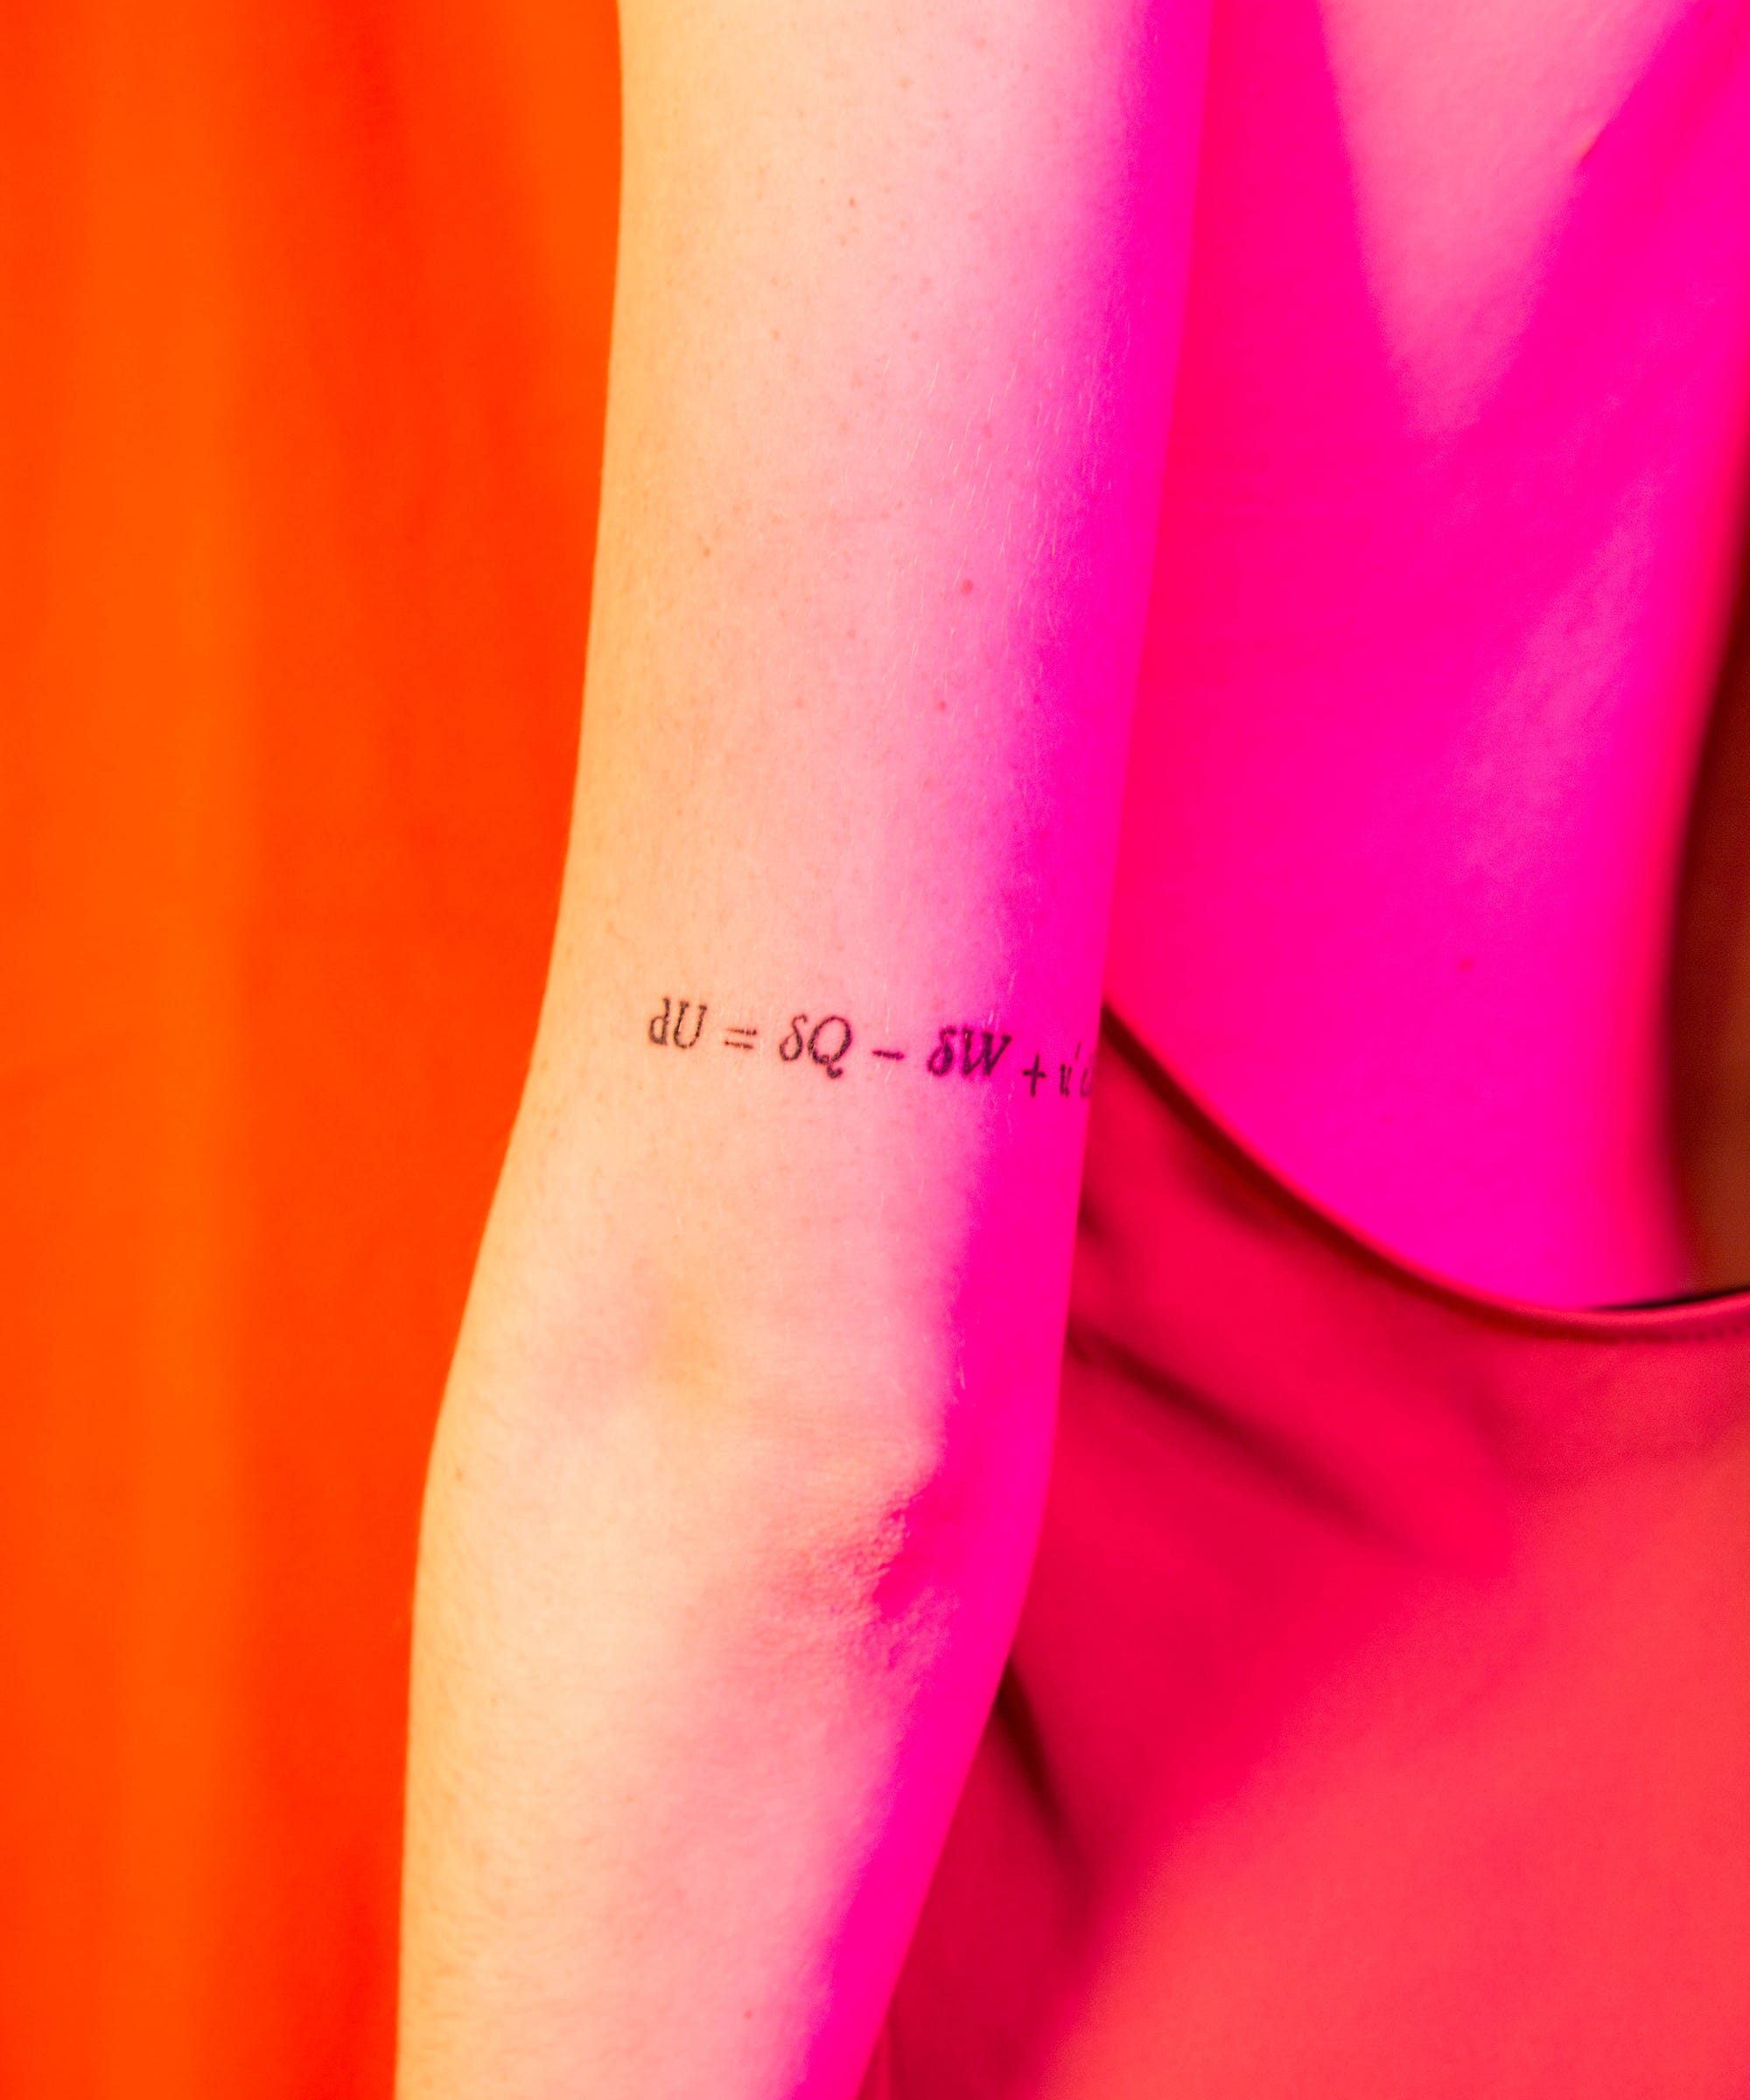 970569617 7 Tattoo Trends You're About To See Everywhere In 2019